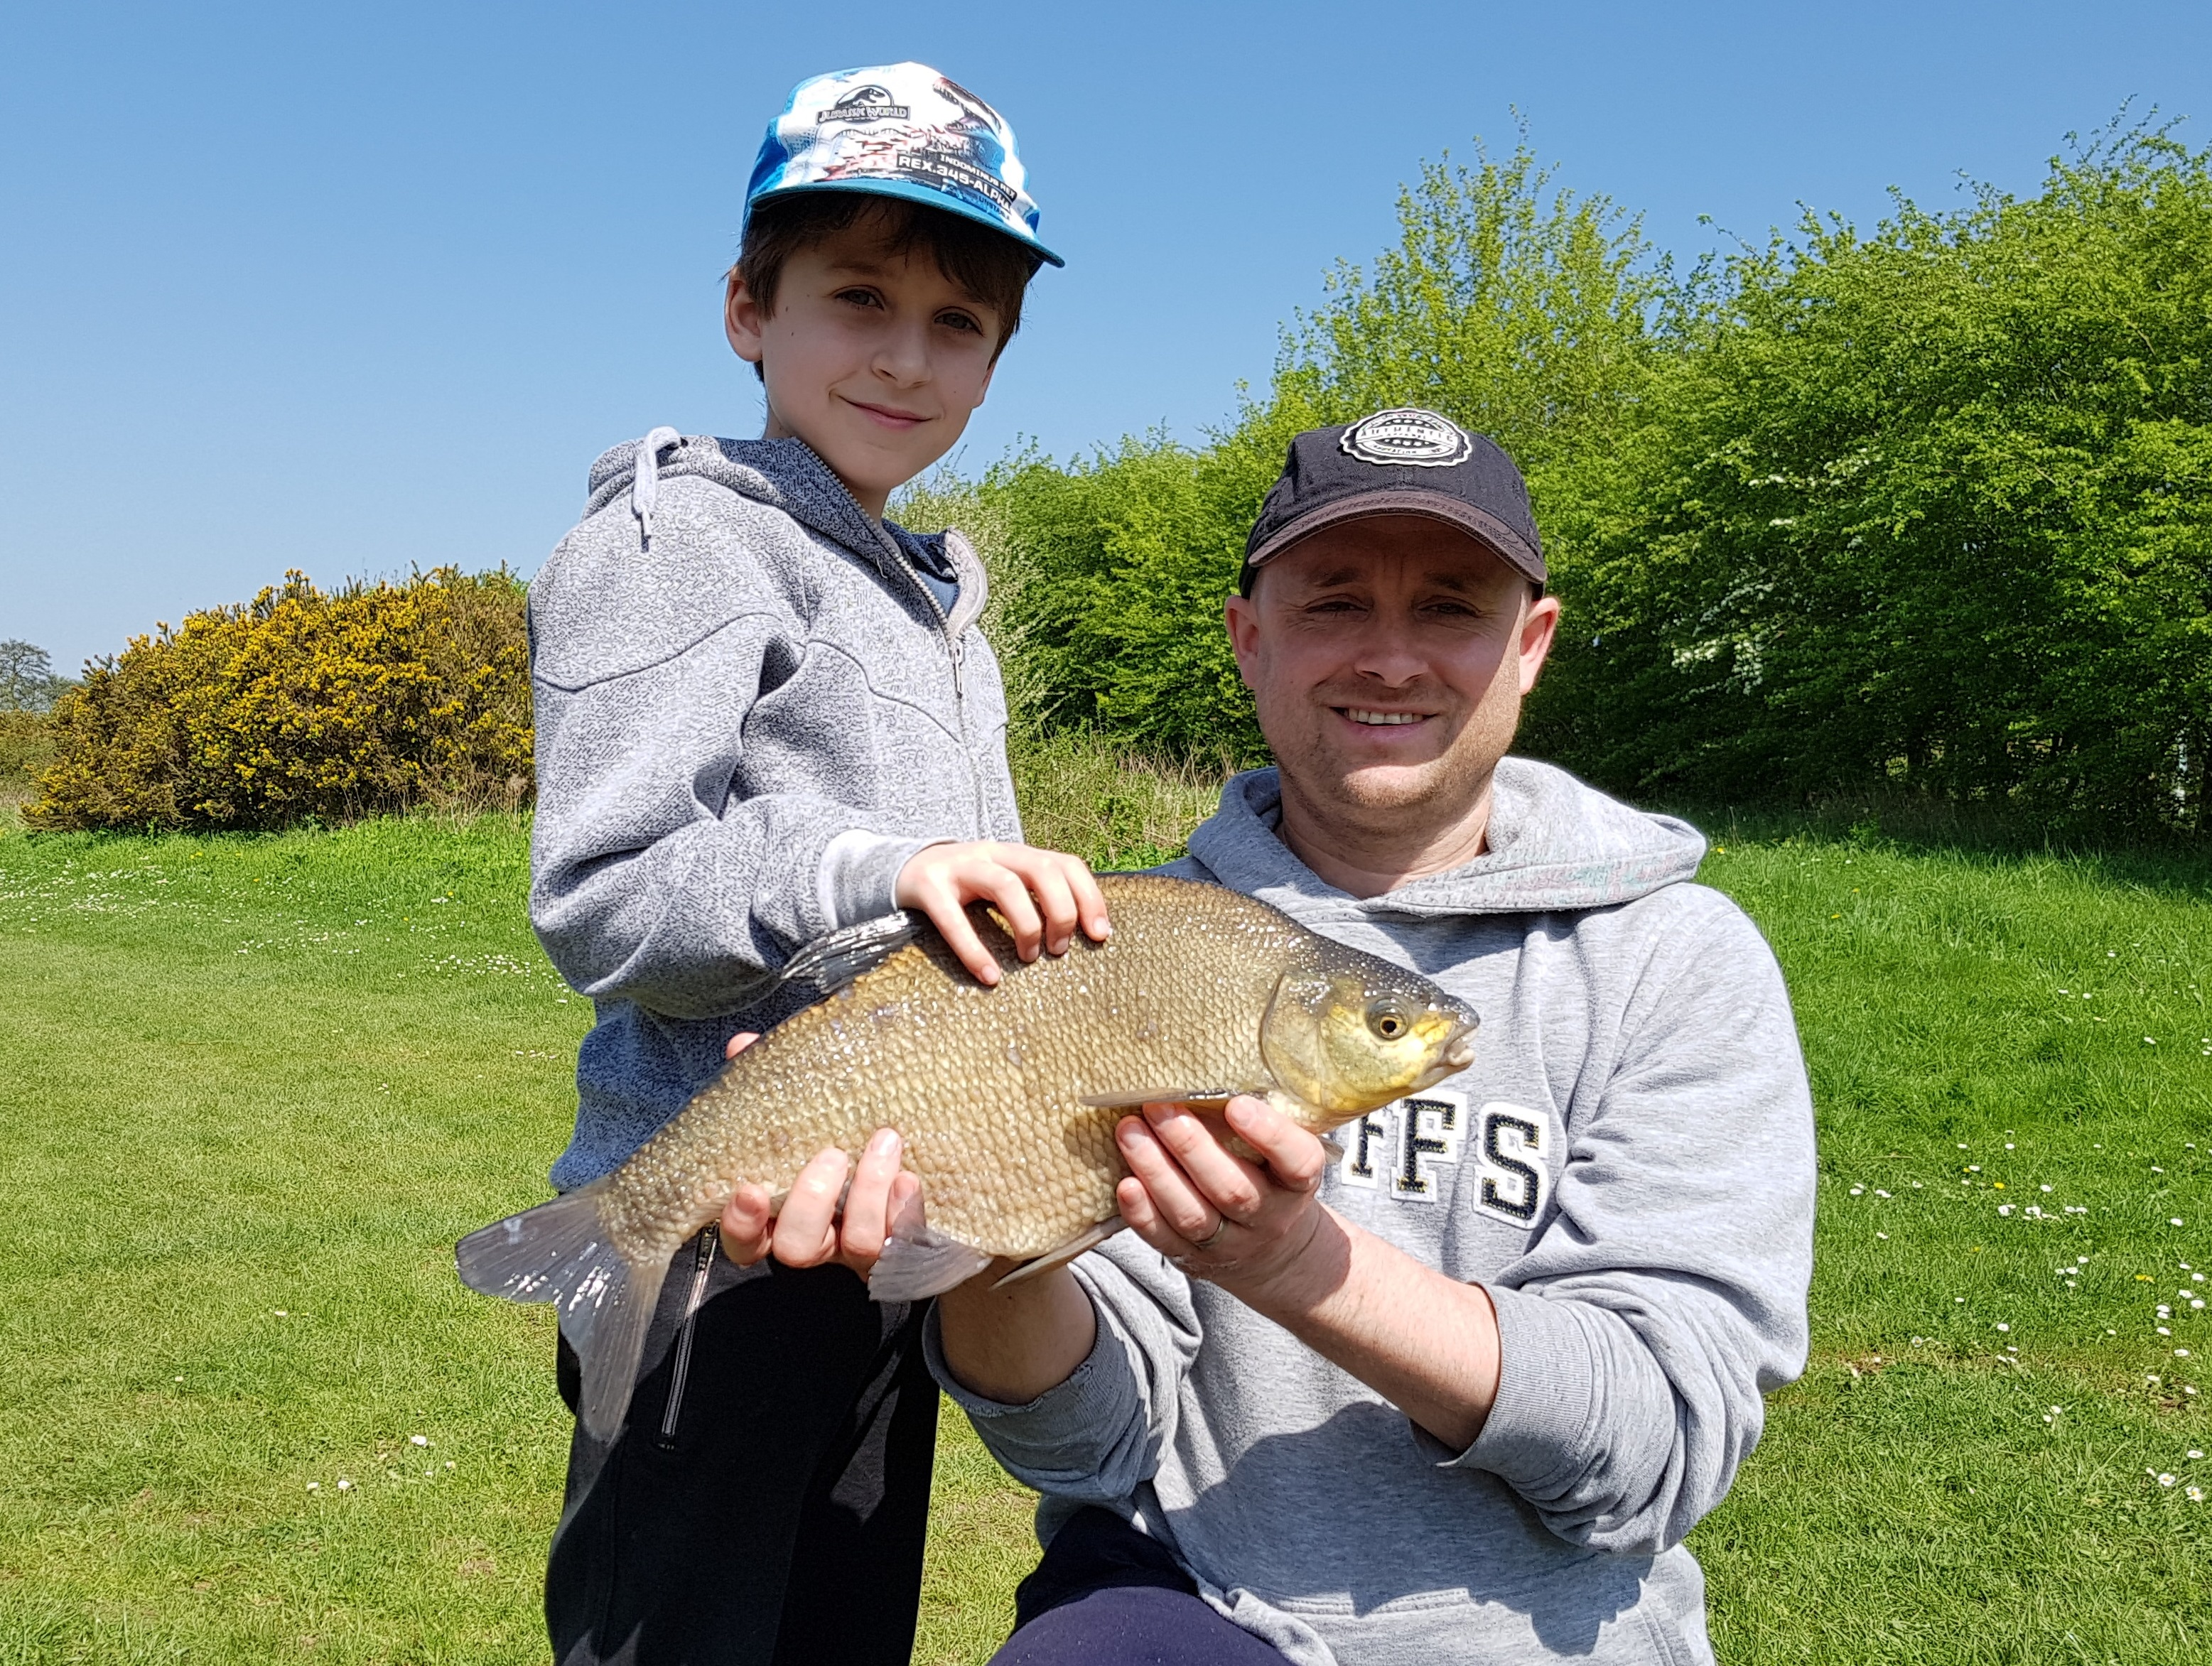 dad and son fishing lesson